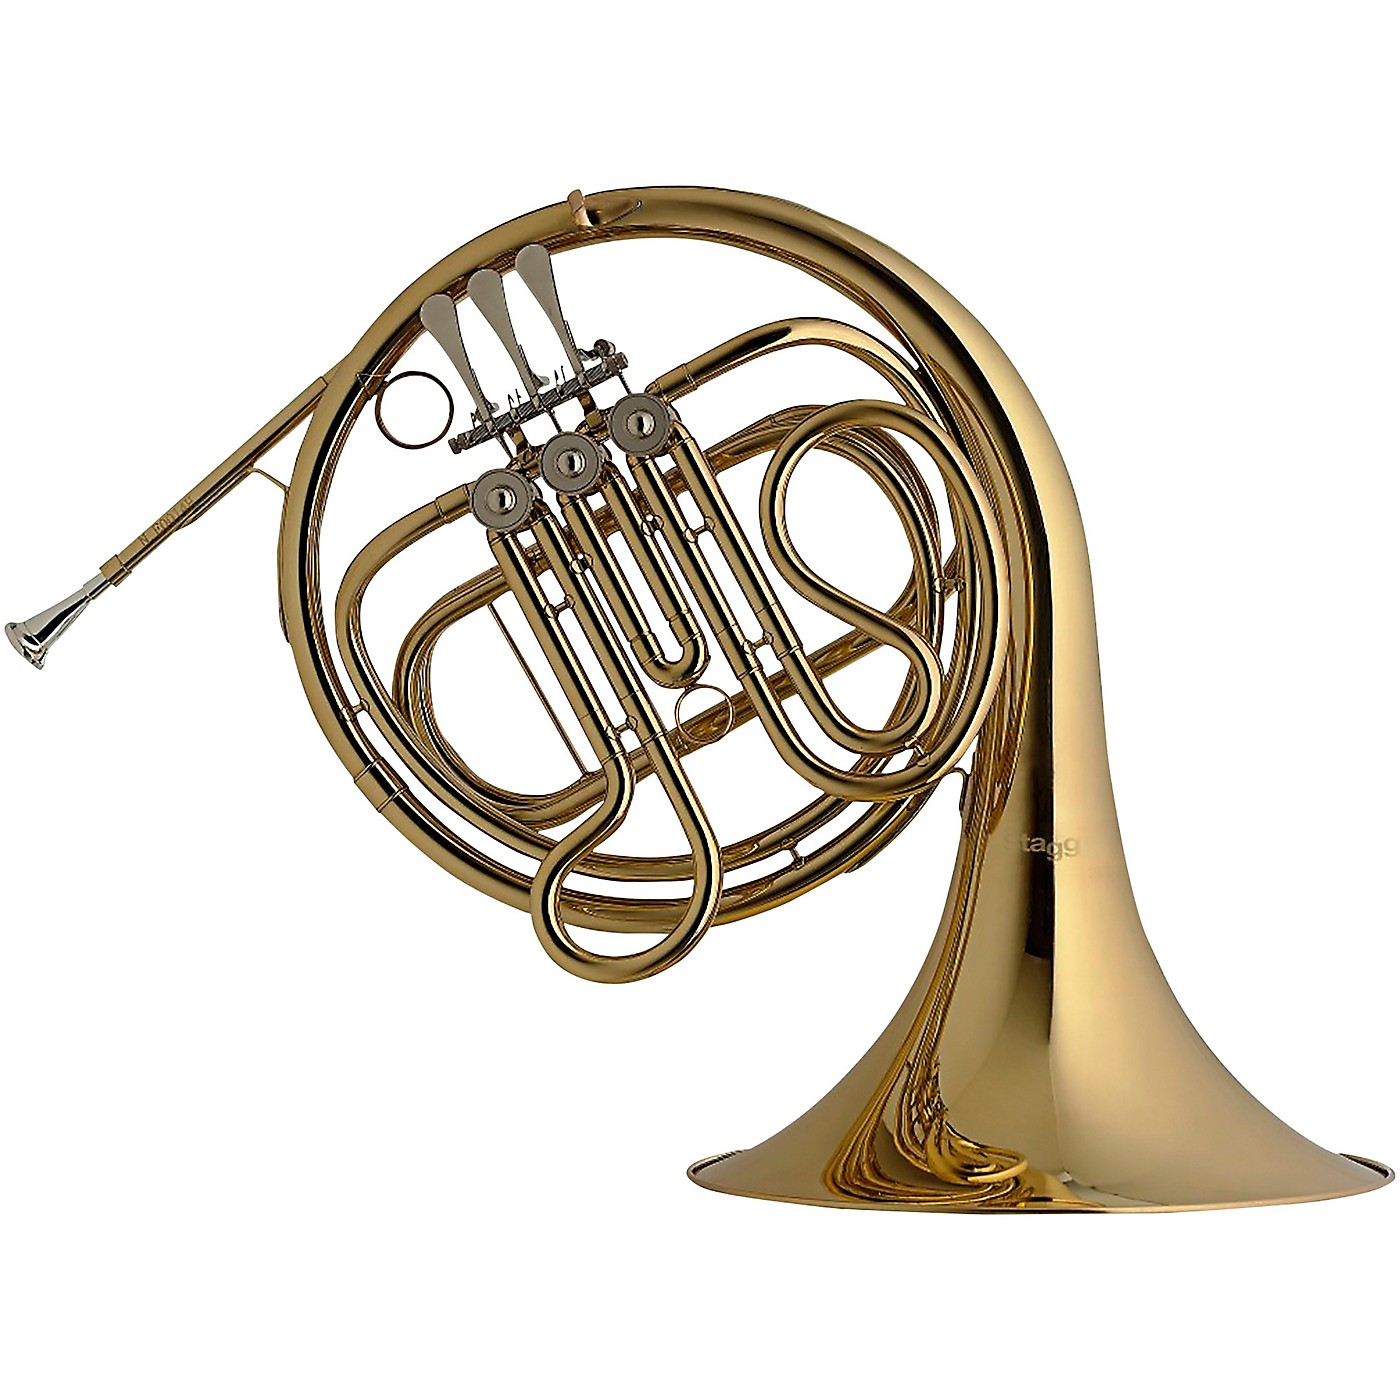 Stagg WS-HR245 Series Single French Horn thumbnail